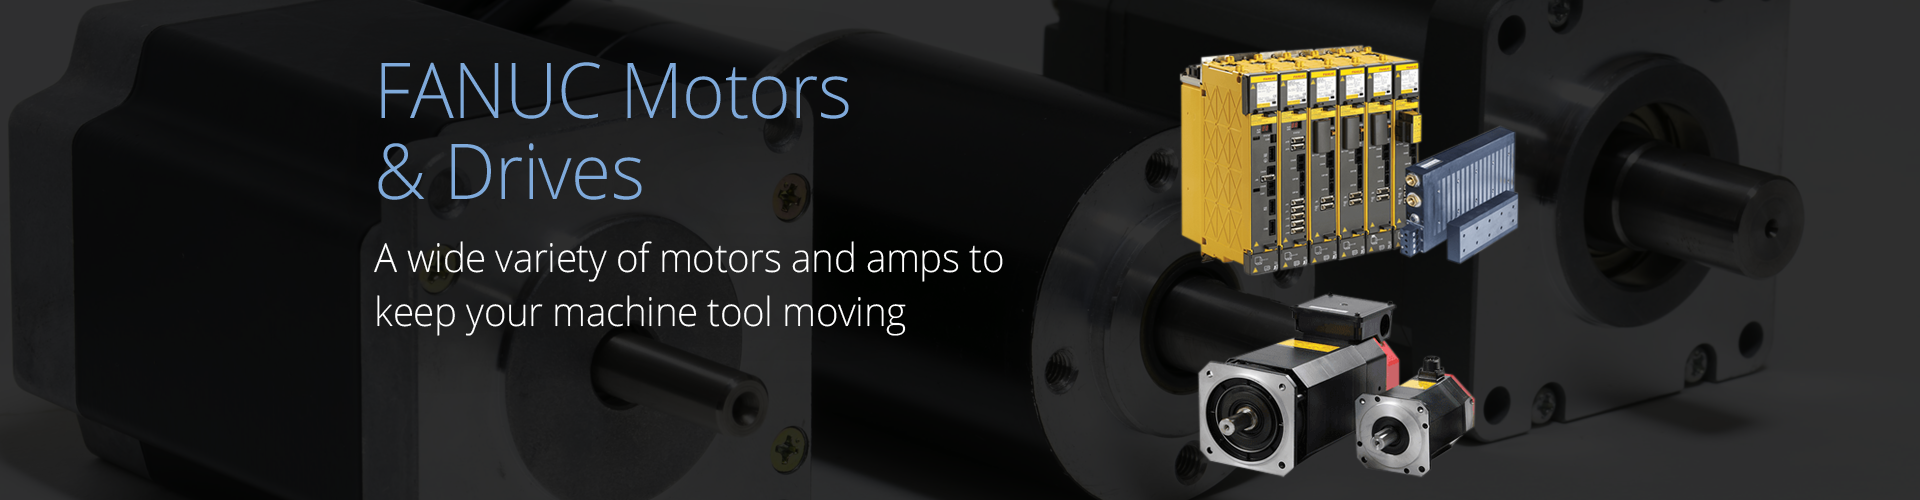 cnc-fanuc-motors-drives